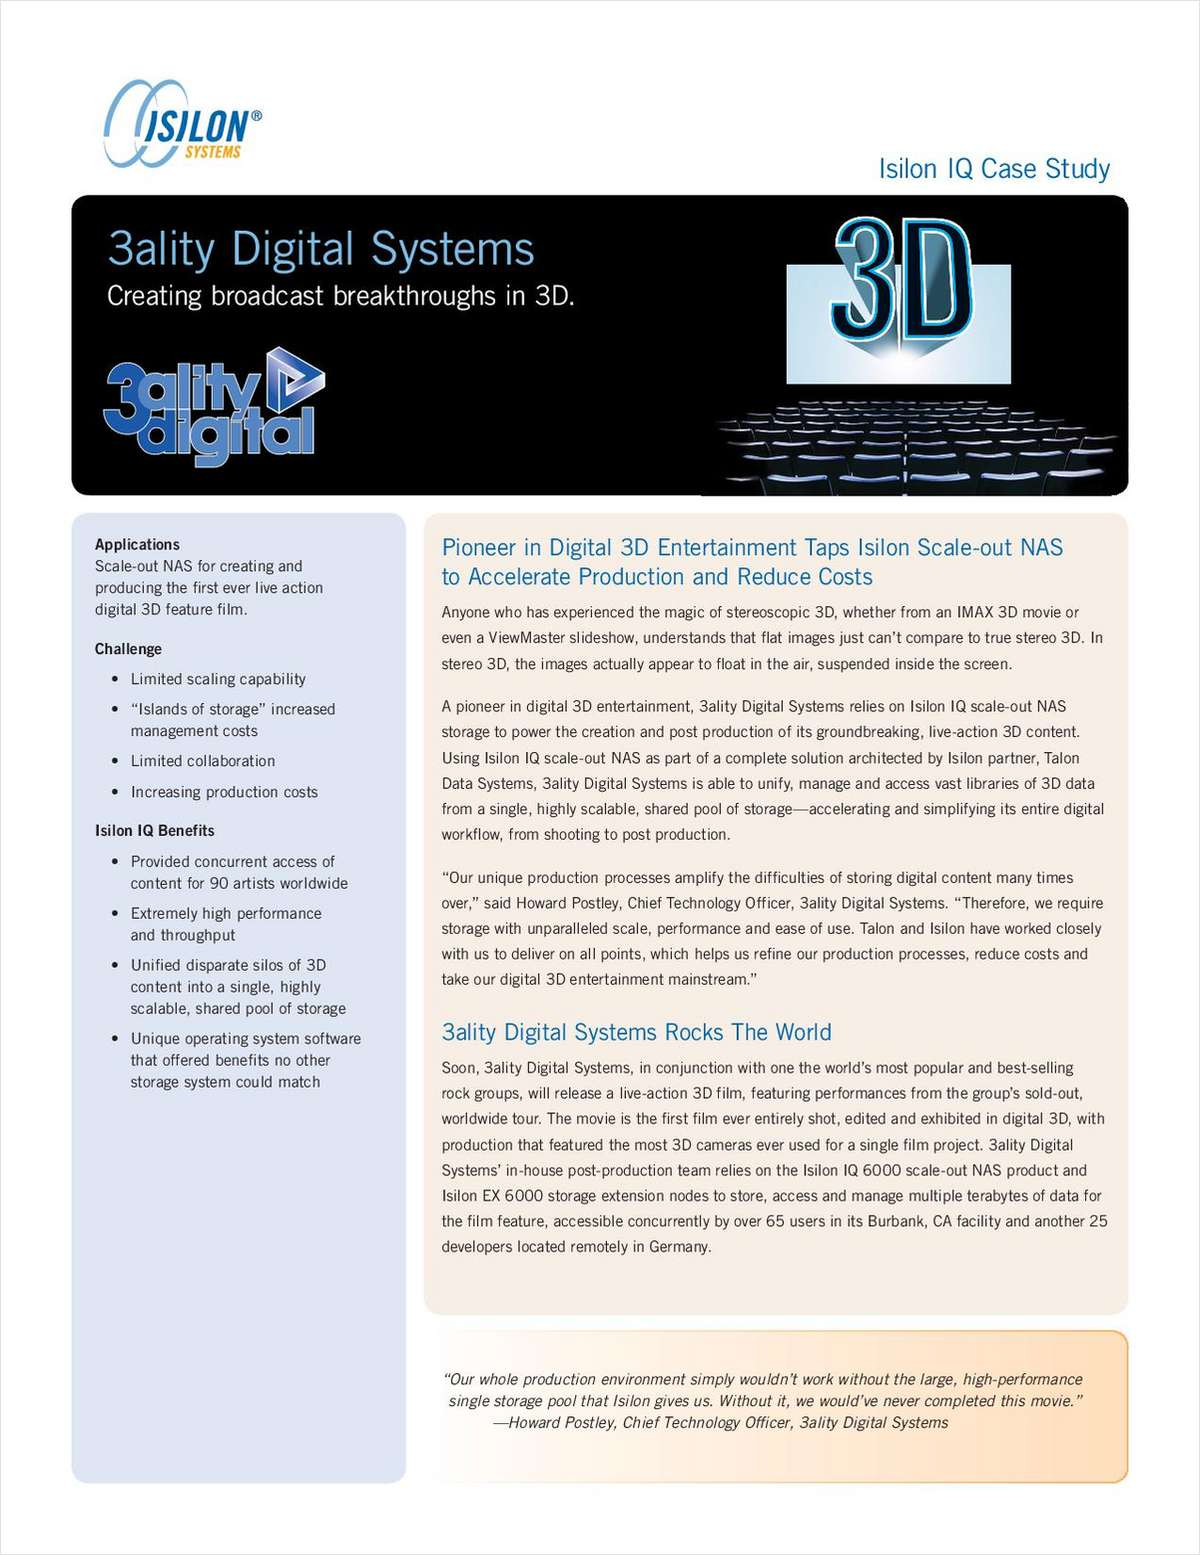 Isilon IQ Case Study: 3ality Digital Systems